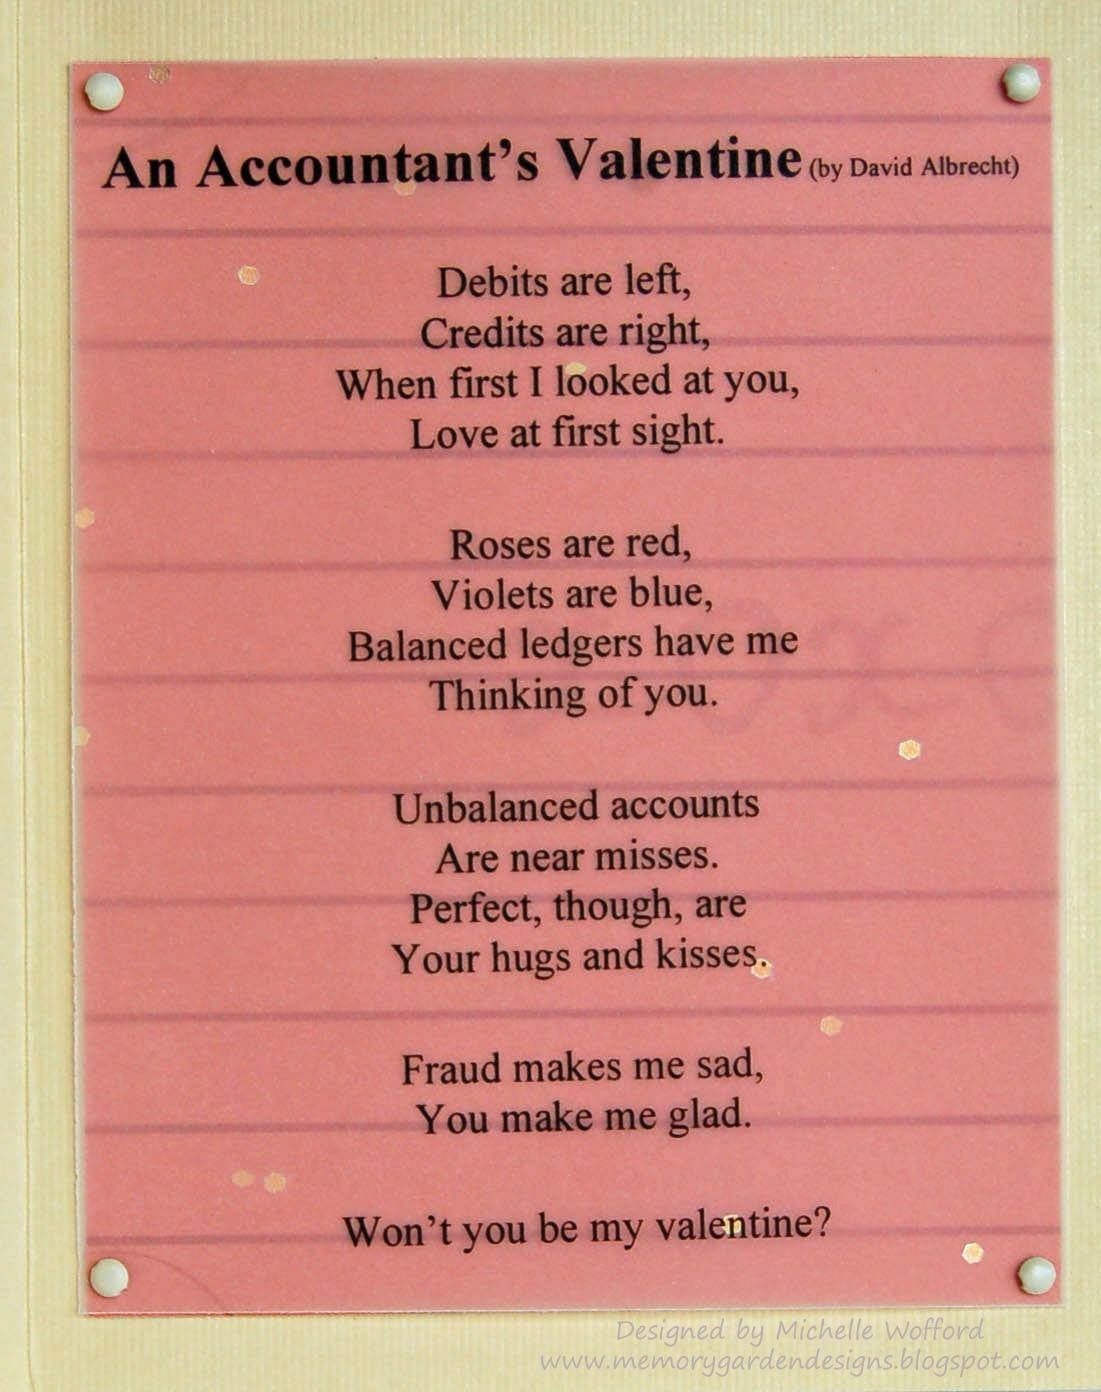 An accountant's Valentine #accountinghumour                                                                                                                                                                                 More